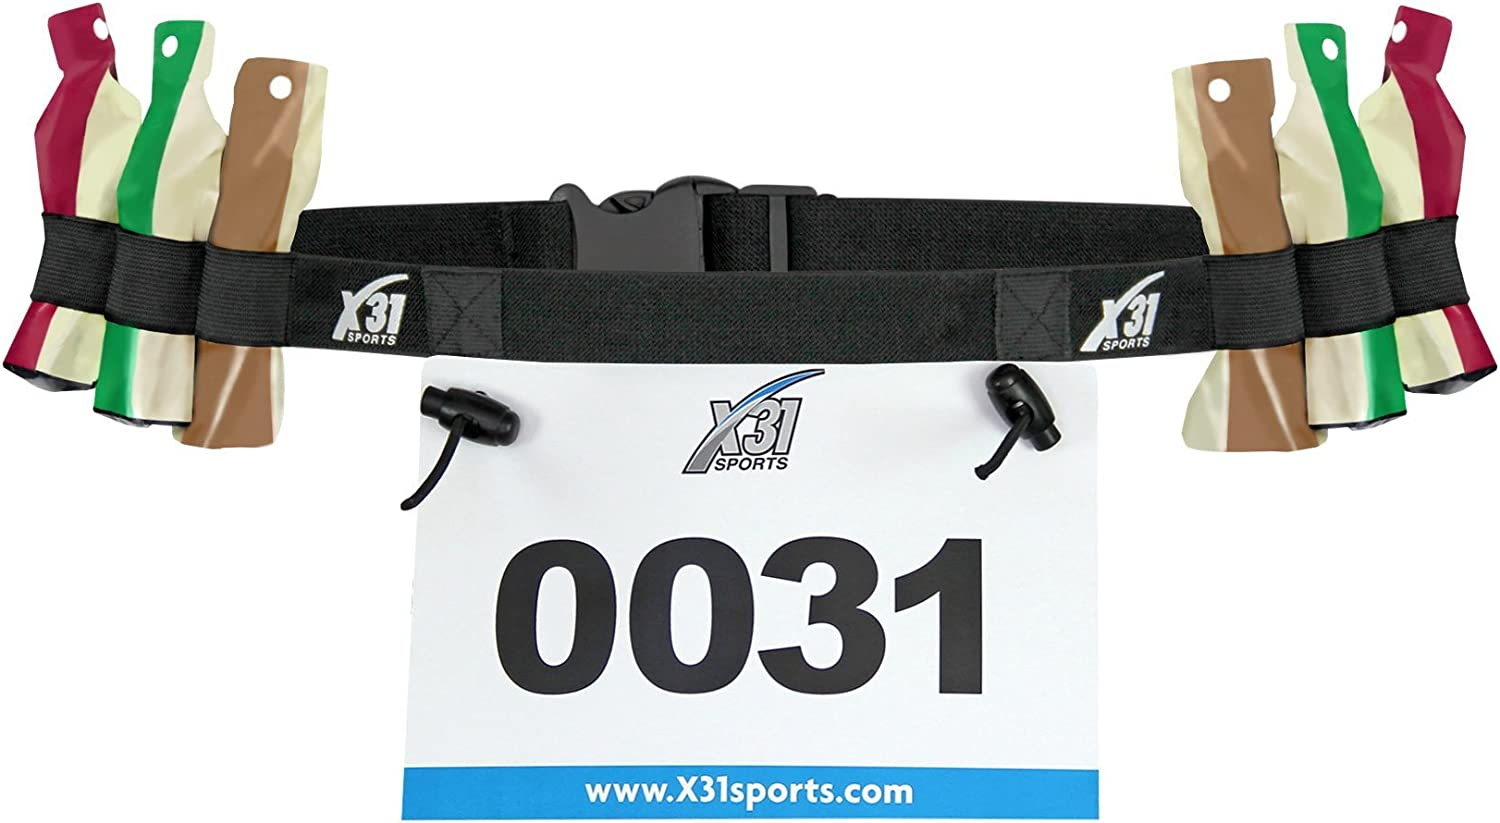 Ltd Triathlon Running Bib Holder with 6 Fuel Gel Loops for Transitions by X31 Sports Shenzhen HongFang Textile Straps/&Belts Co Race Number Belt